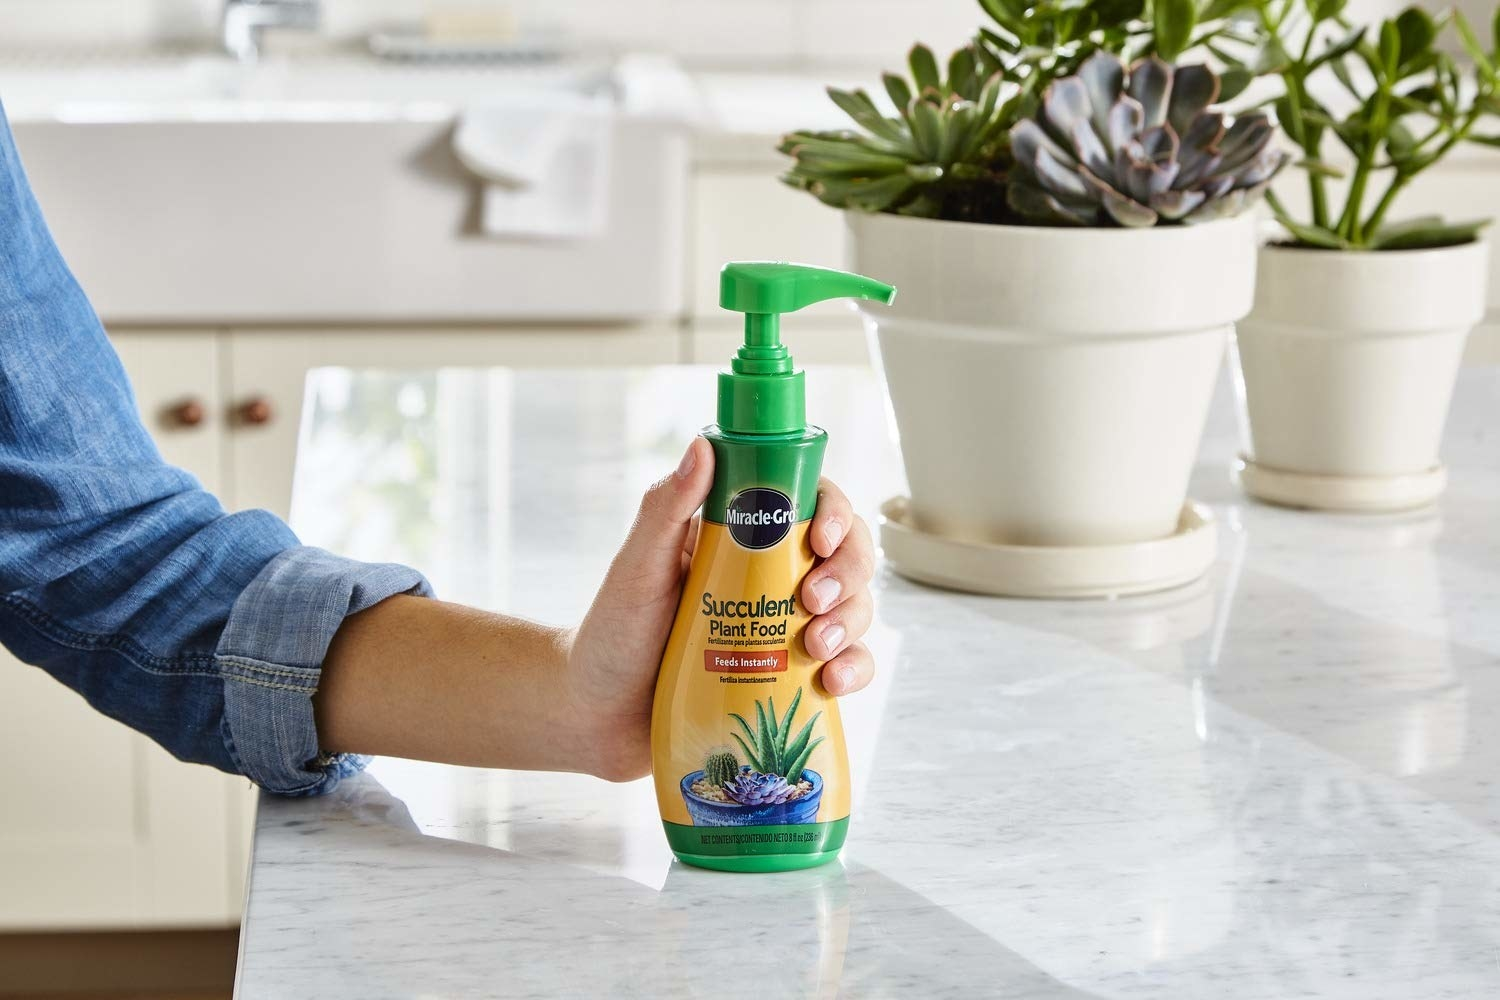 A bottle of Miracle Gro succulent plant food.